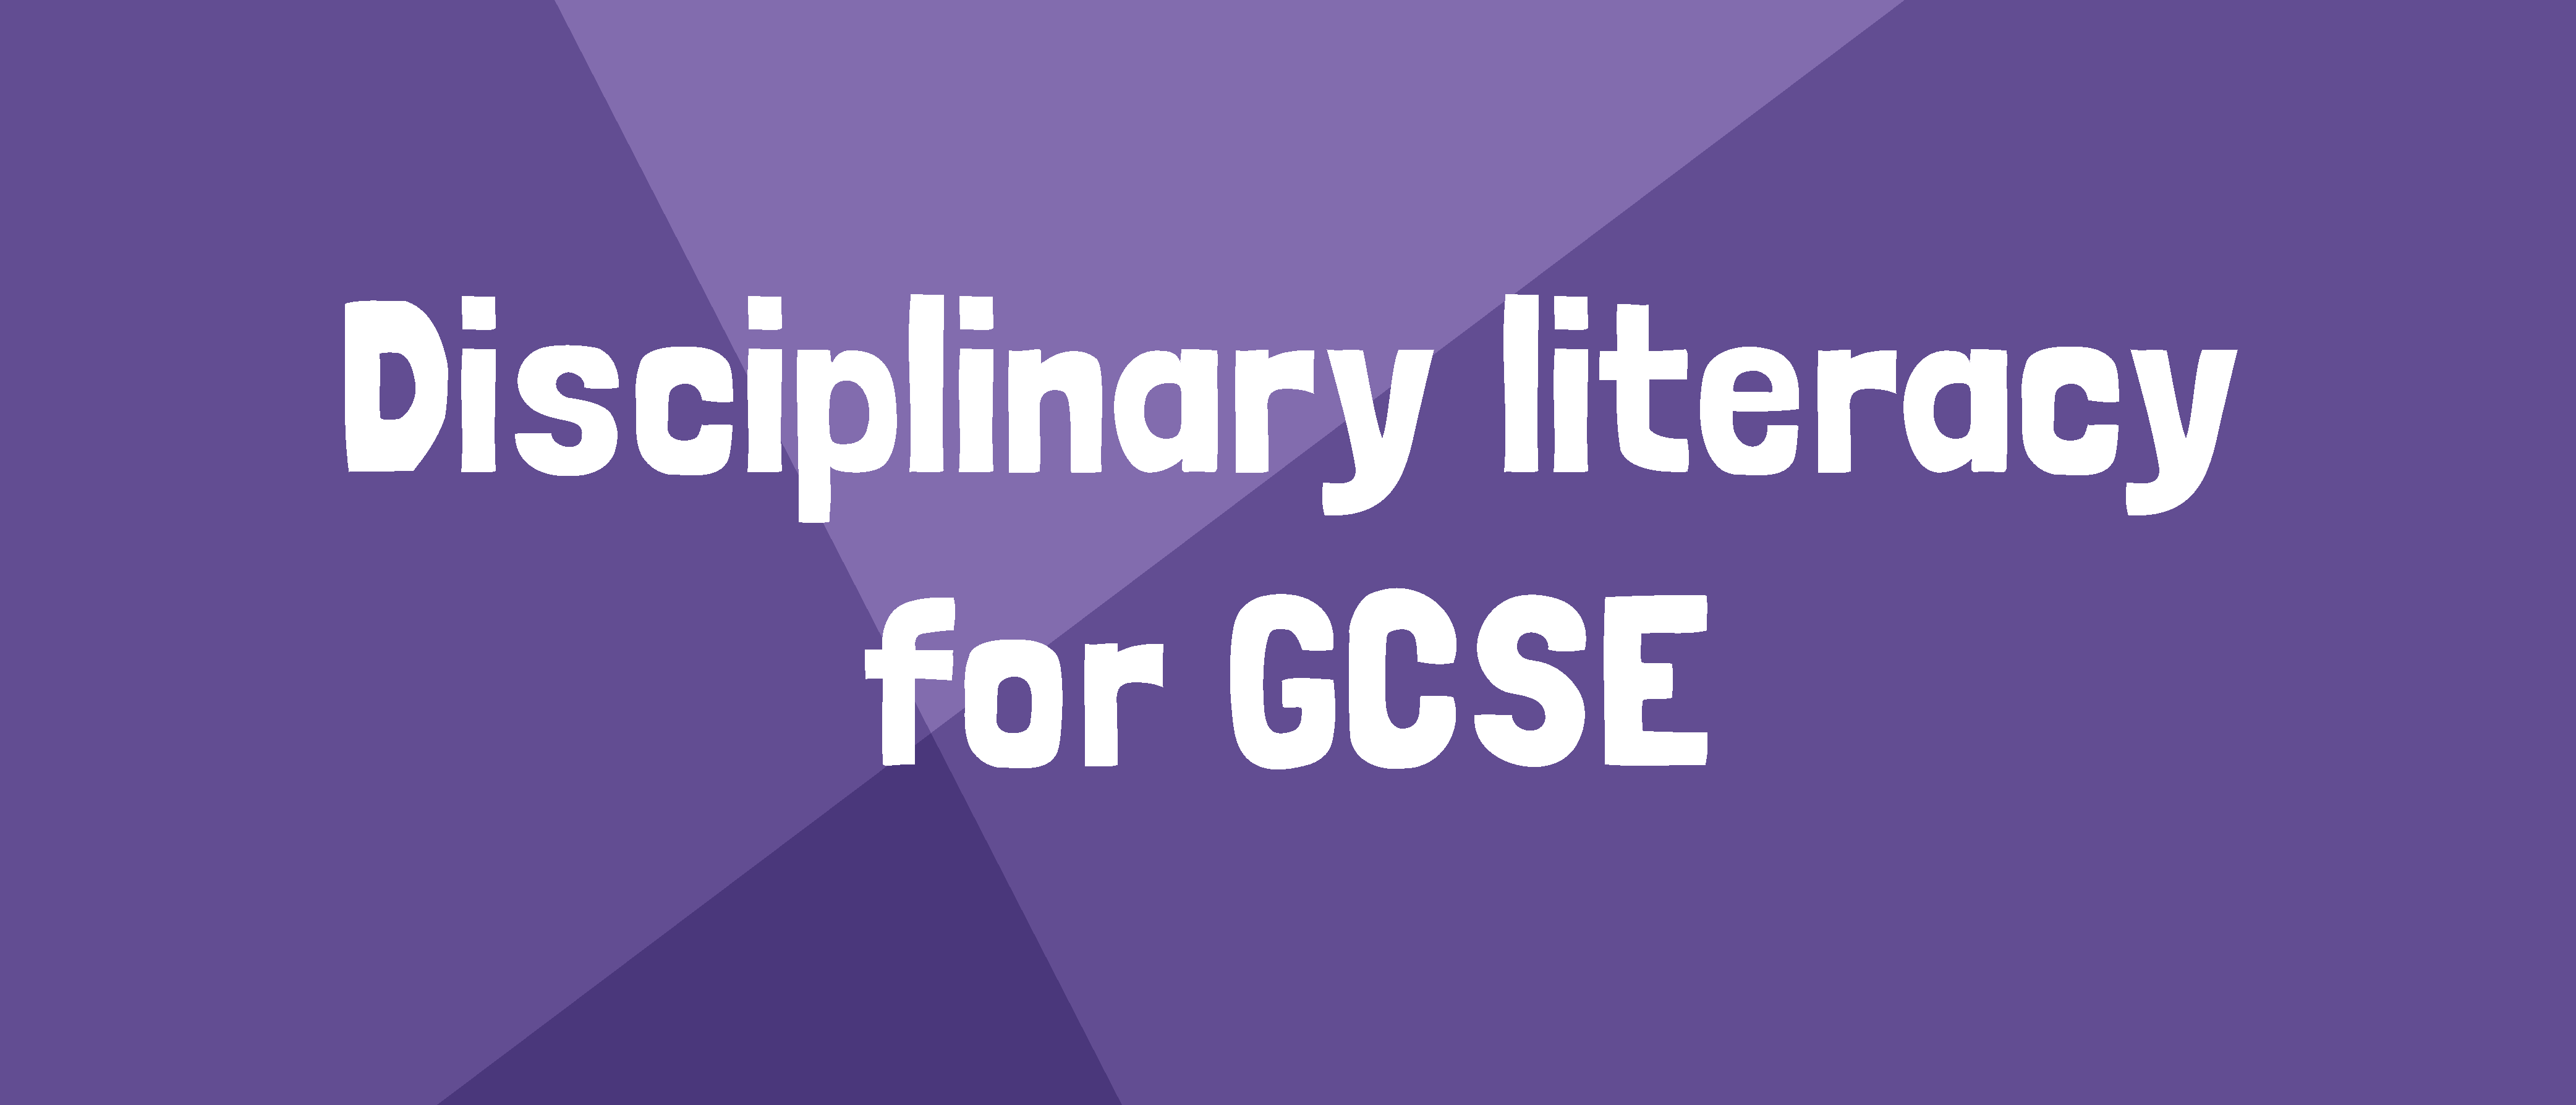 disciplinary literacy WEB_BANNER-combined9.png